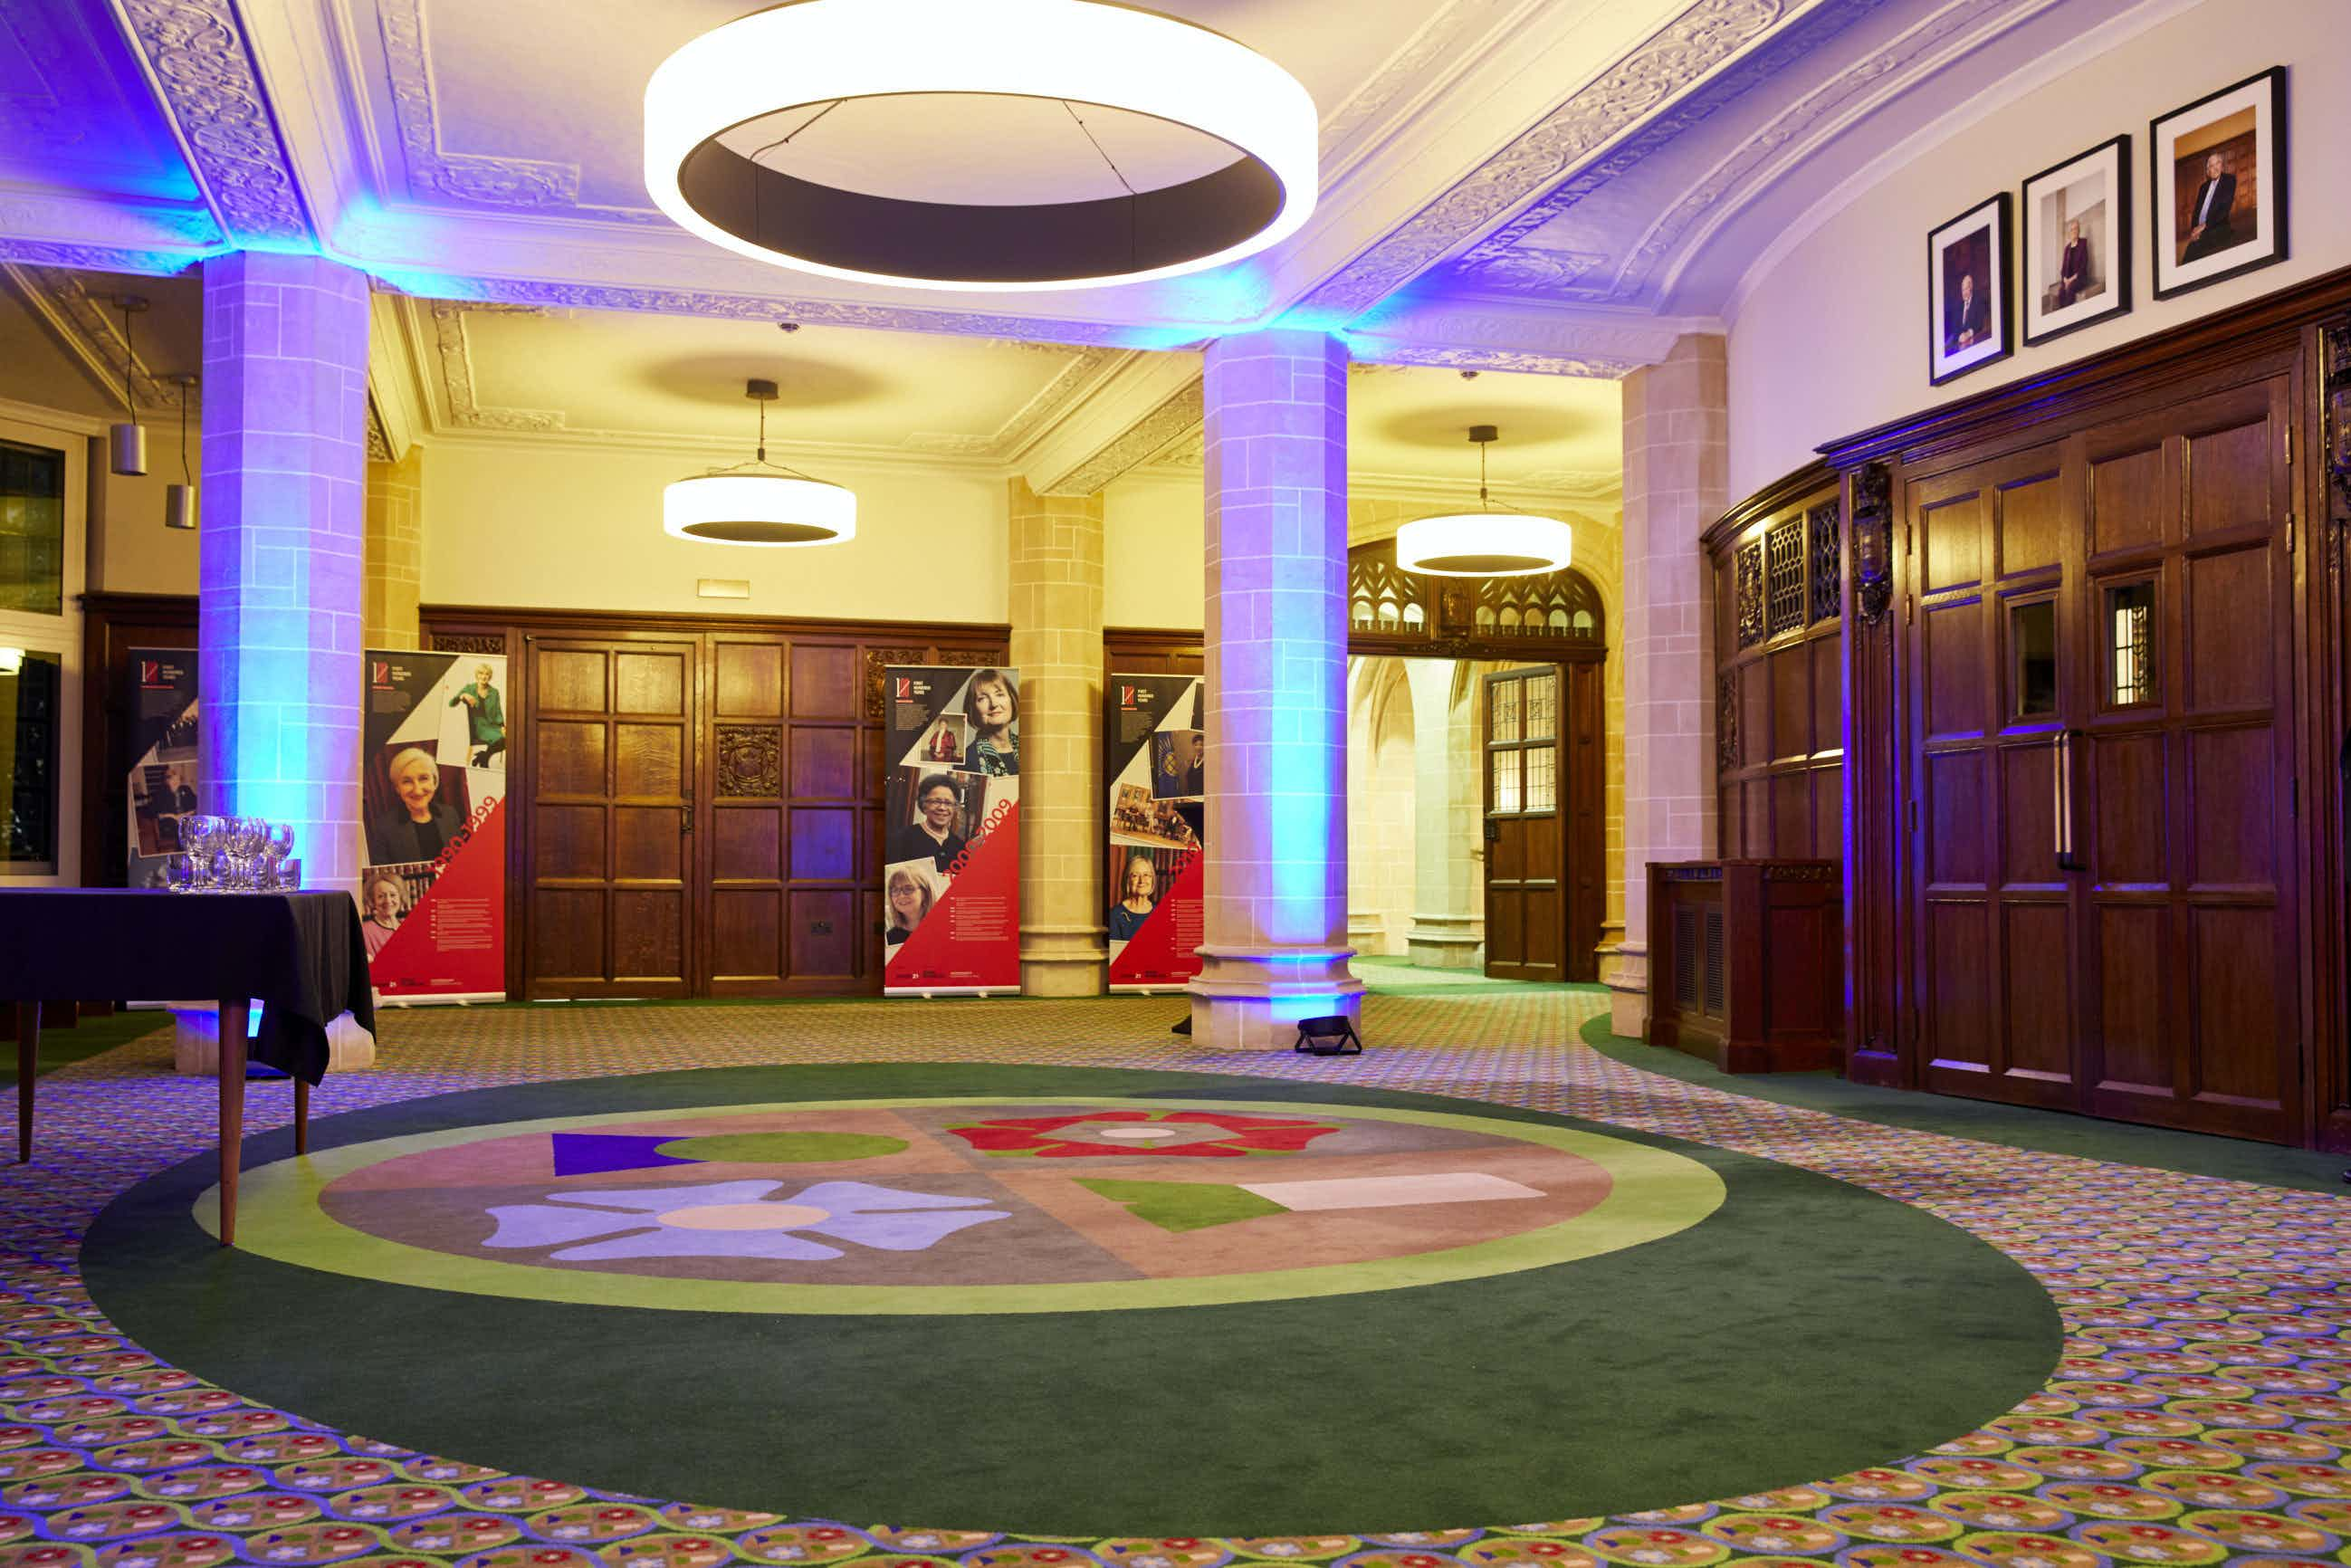 The Lobby, Day Hire, The Supreme Court of the United Kingdom